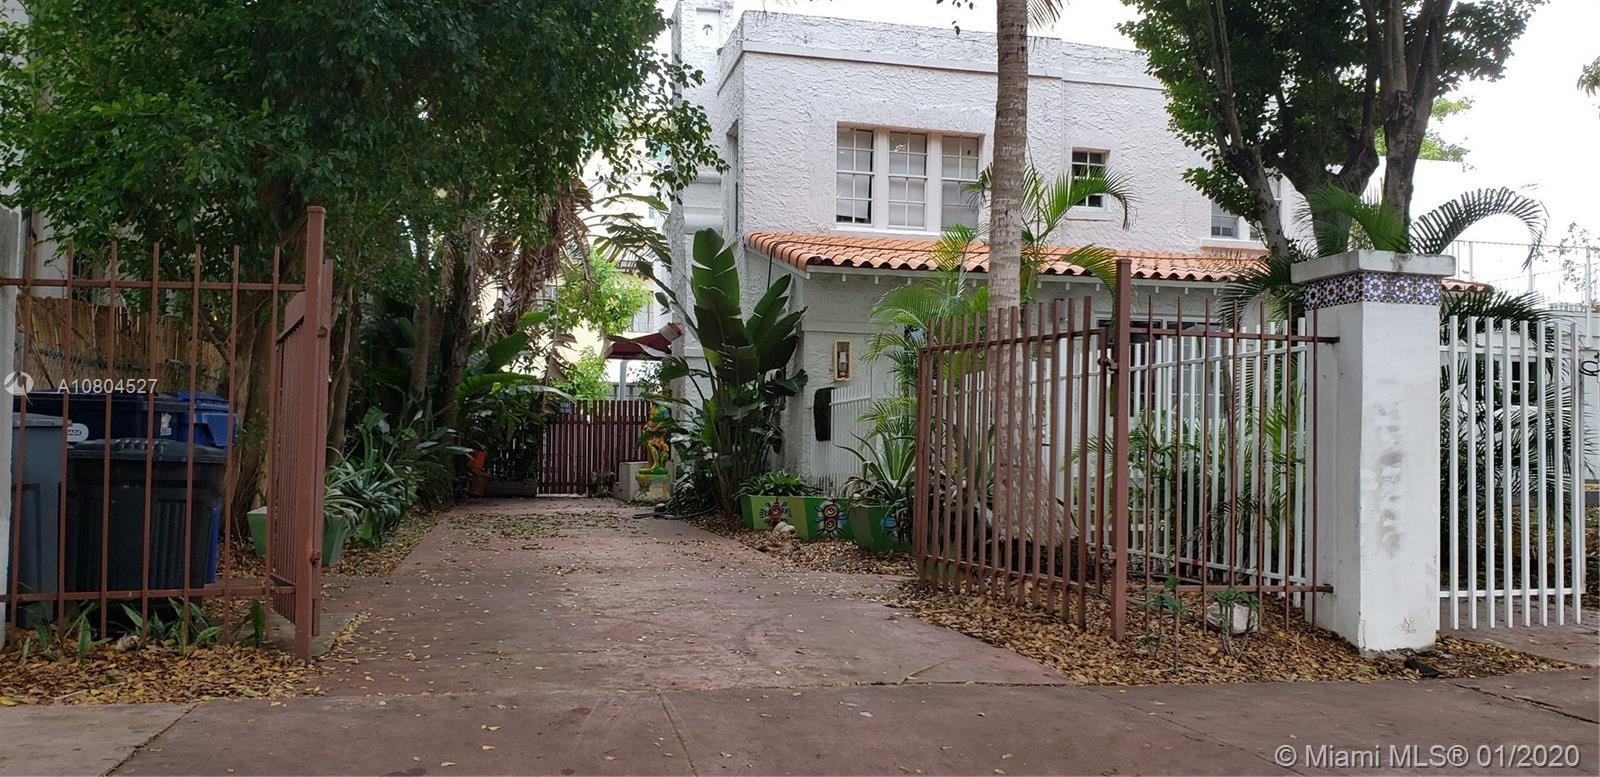 This beautiful Mediterranean 2nd floor home is located in the heart of Miami Beach, walking distance